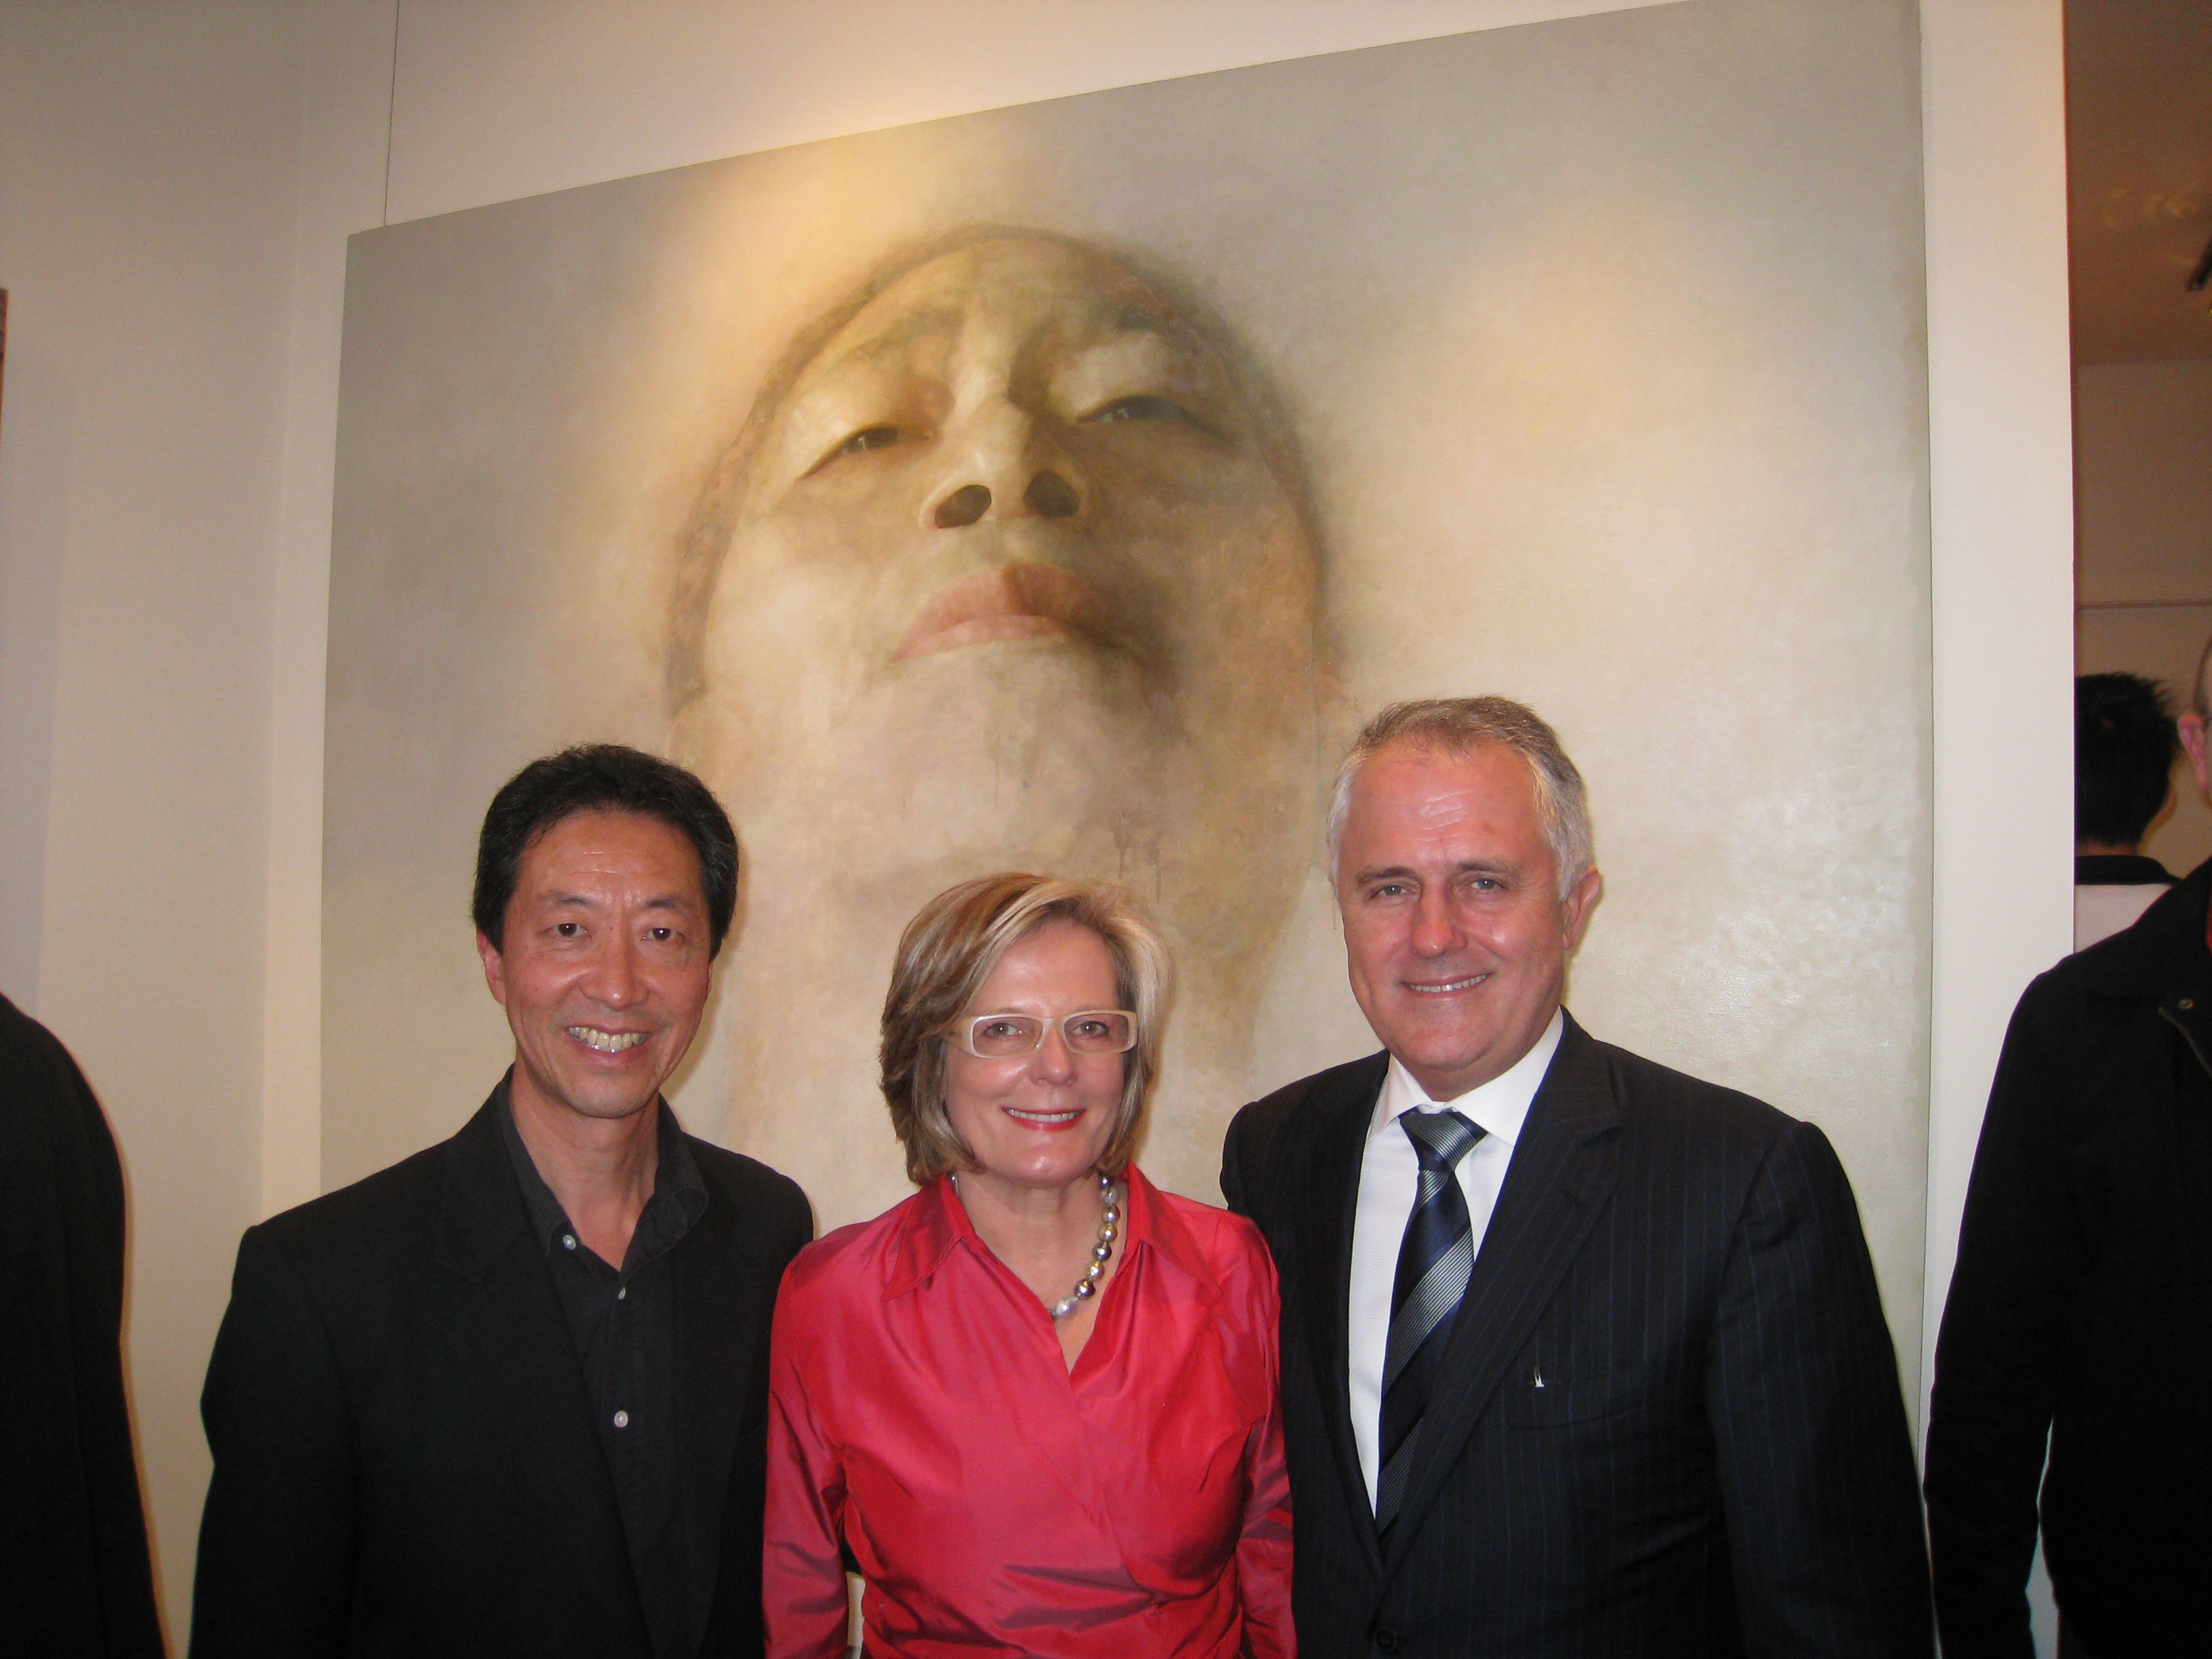 Art-Atrium-Trascendence-launched-by-The-Hon-Malcolm-Turnbull-MP-2009